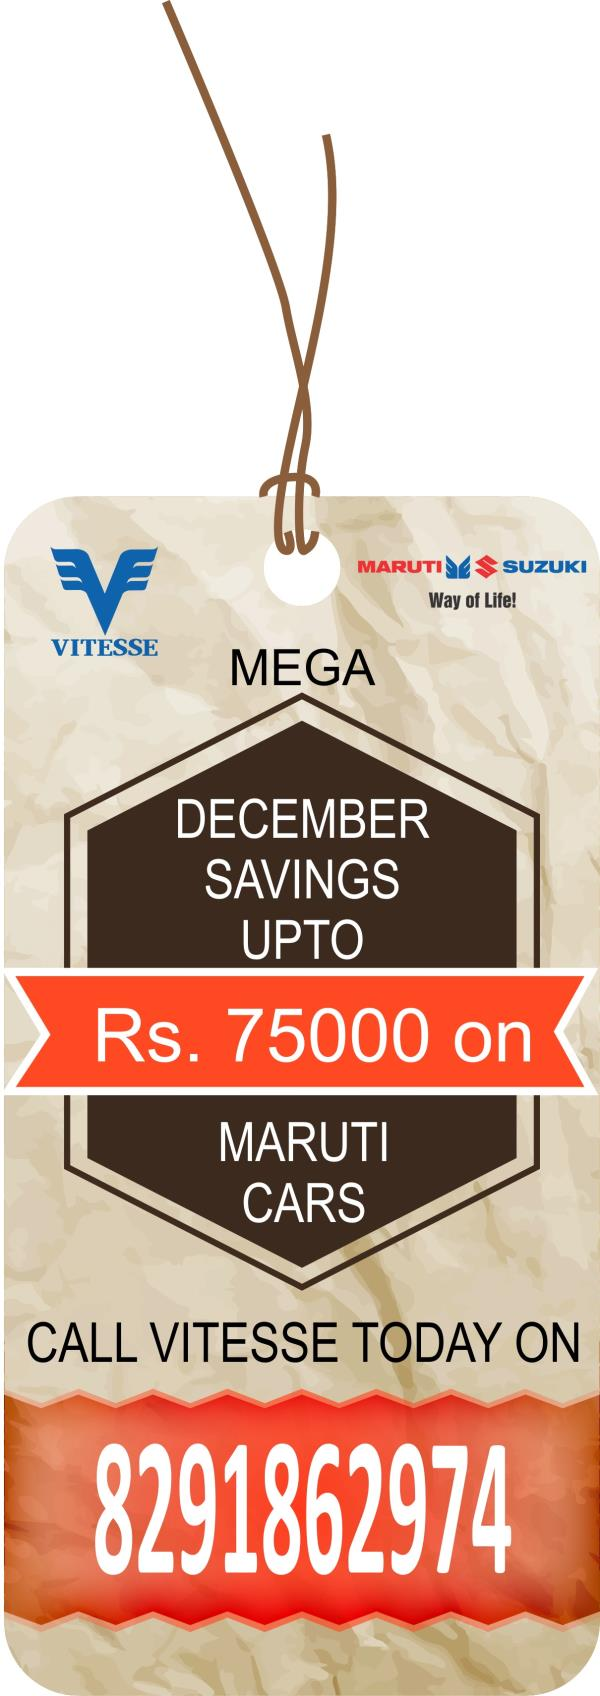 MEGA DECEMBER SAVINGS UPTO RS.75000 ON MARUTI CARS AT VITESSE .PLEASE CALL US ON 8291862974 TODAY. HAPPY TO MEET & ASSIST. T& C APPLY